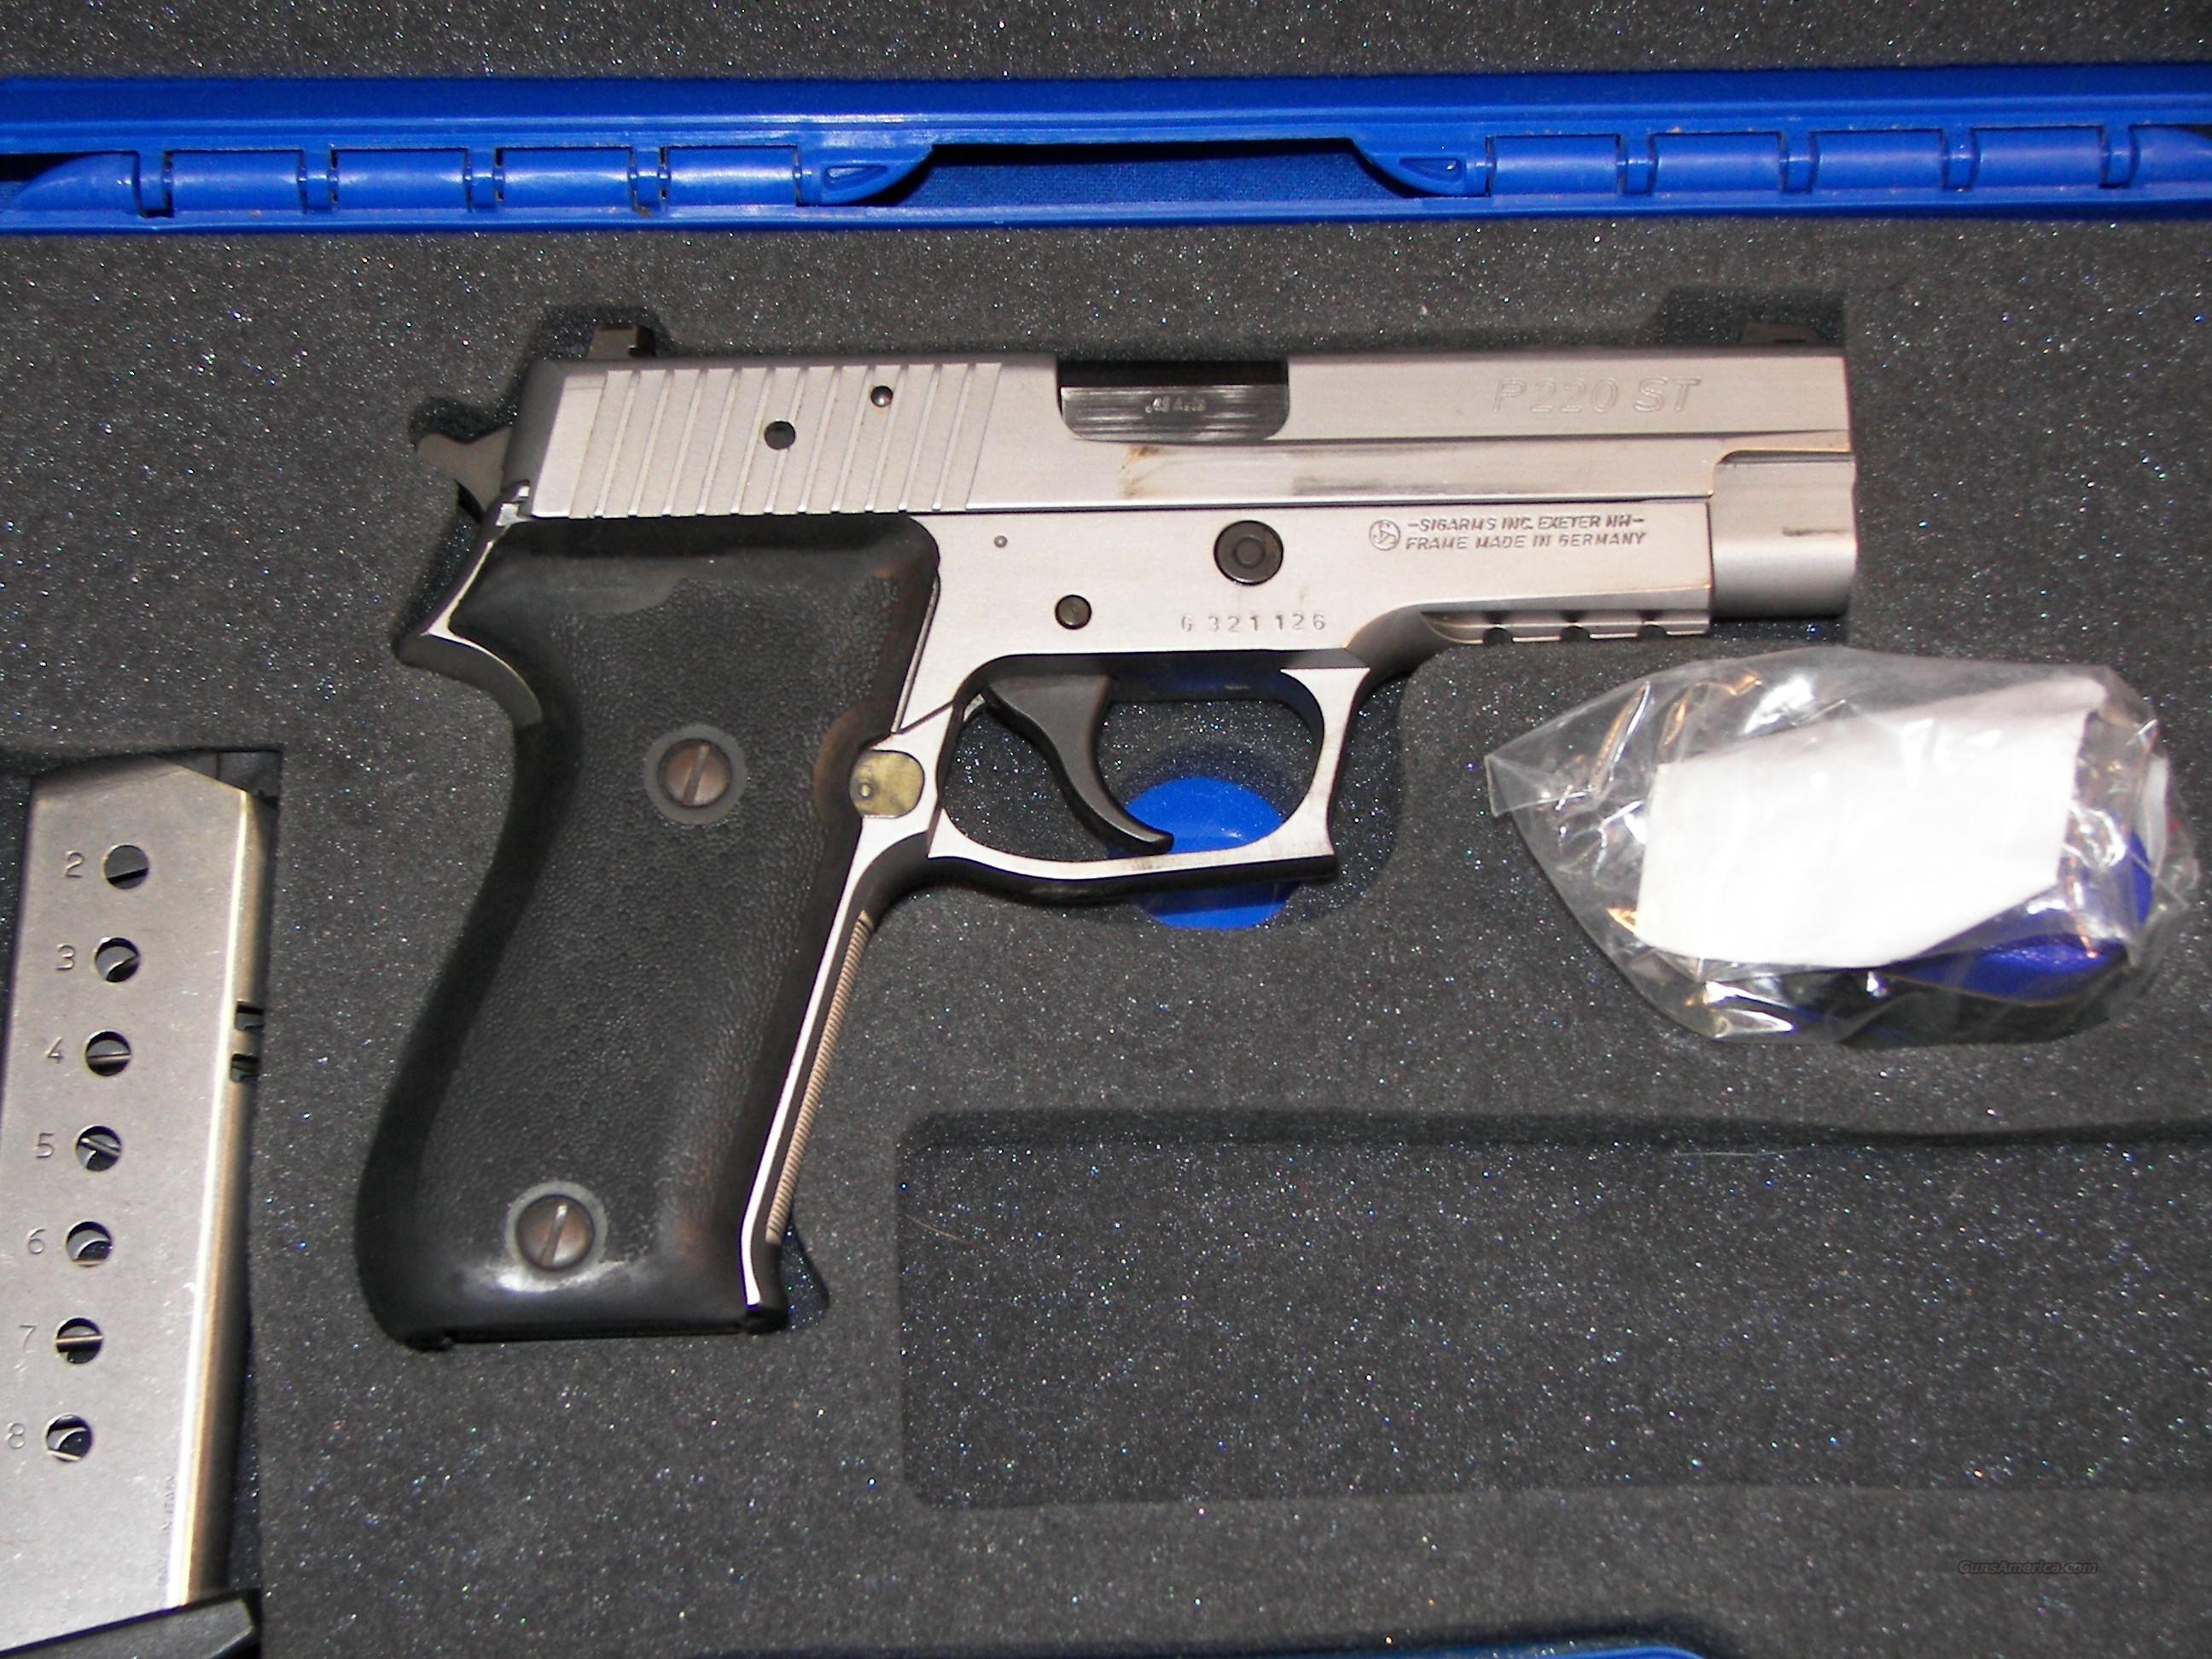 SIGARMS P220 ST  .45ACP  STAINLESS  Guns > Pistols > Sig - Sauer/Sigarms Pistols > P220